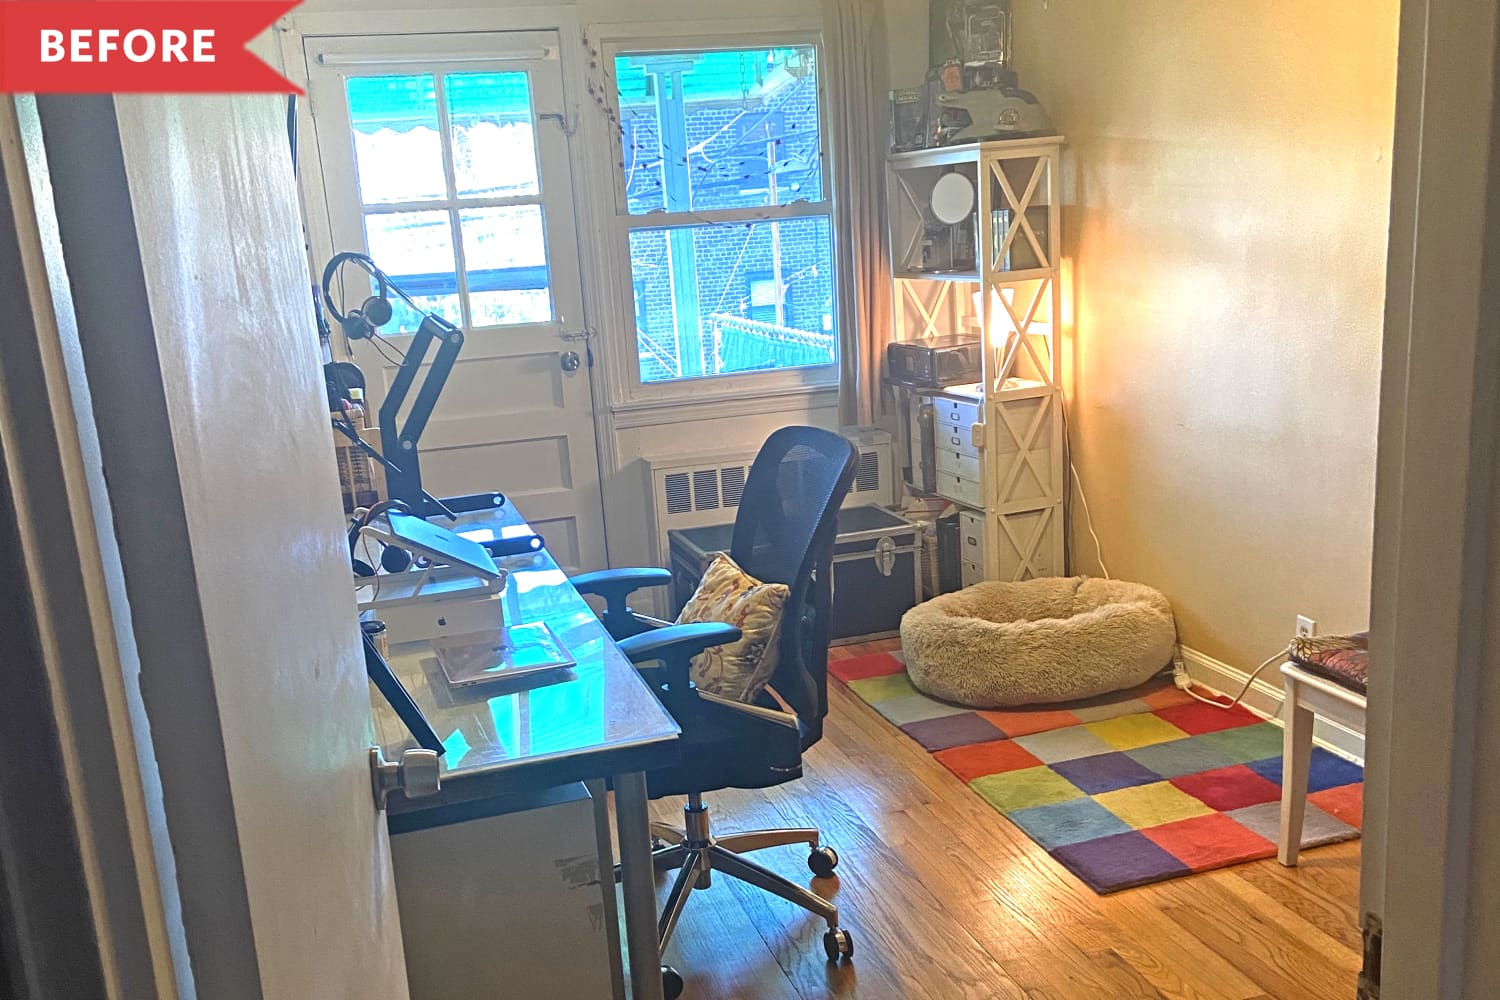 Before and After: Interior Designer Mikel Welch Turned This Cluttered Office Into a Cozy Hangout